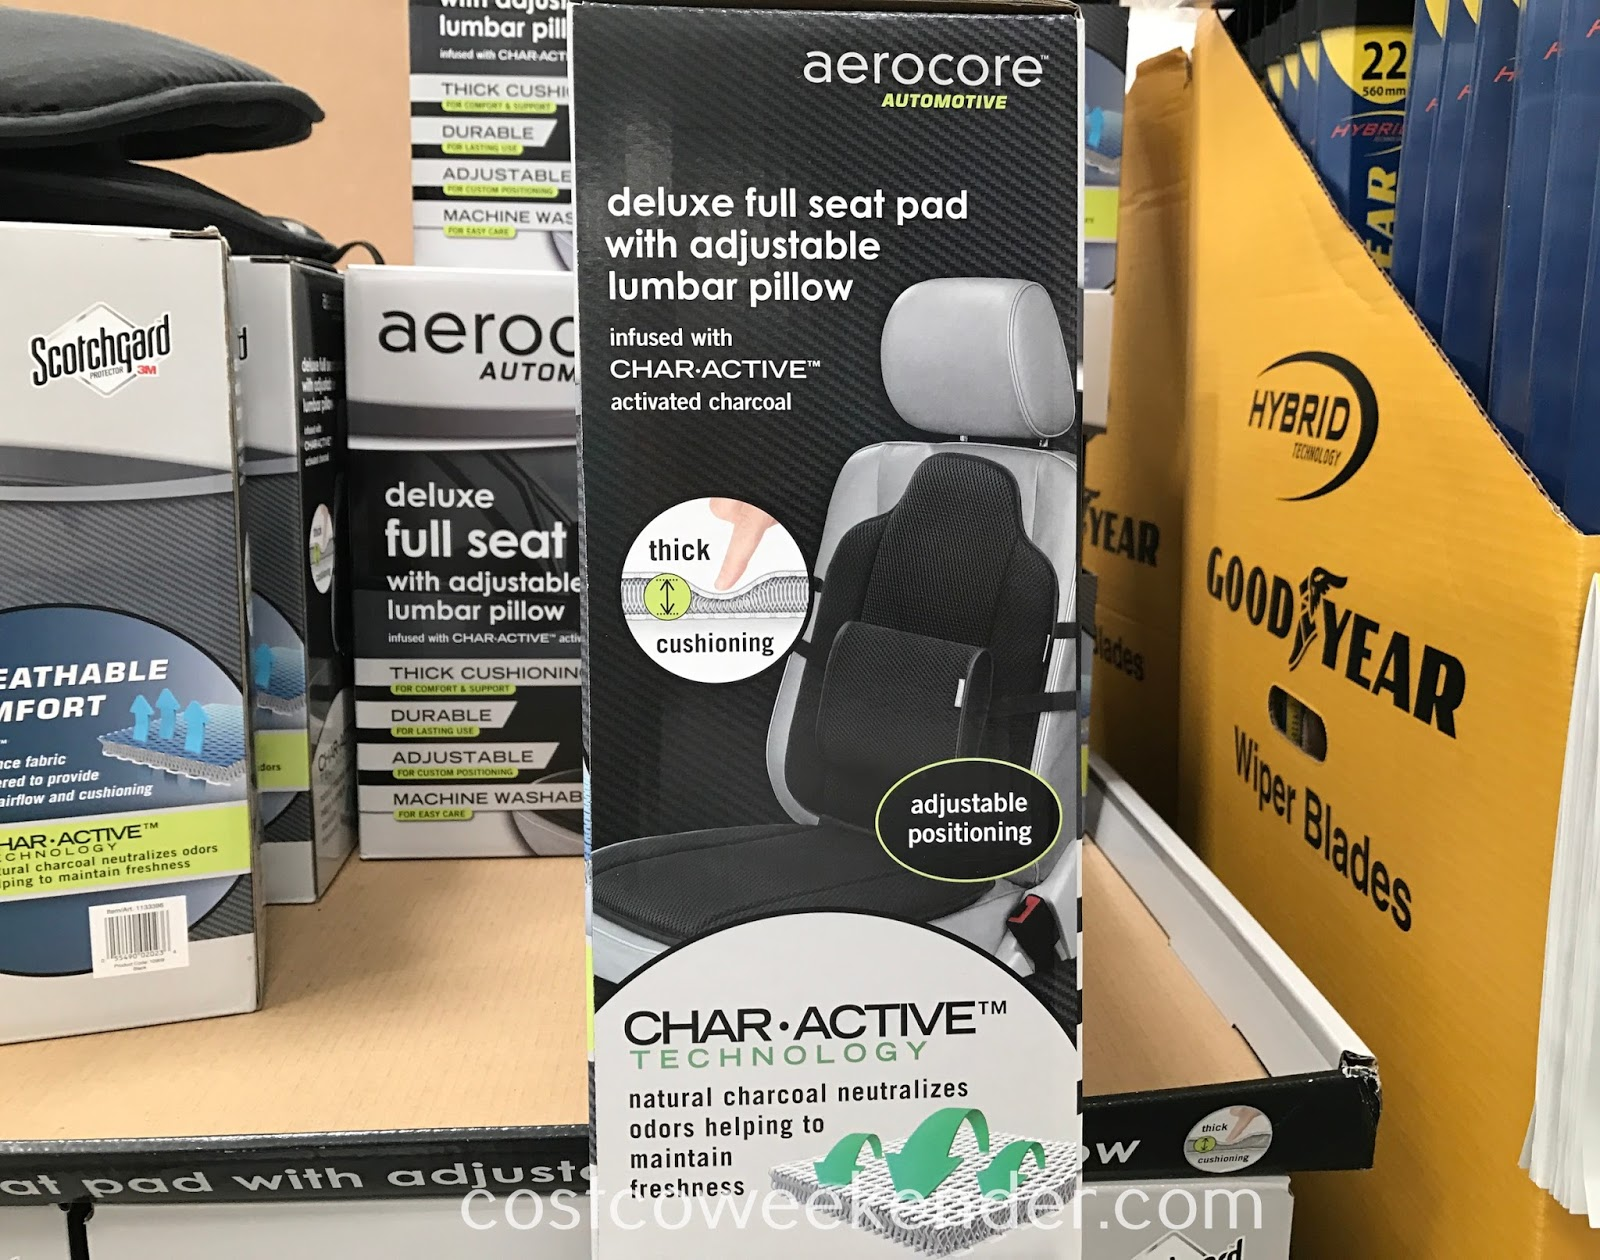 Costco 1133396 - Aerocore Deluxe Full Seat Pad Lumbar Cushion Set: personalized comfort in your own car